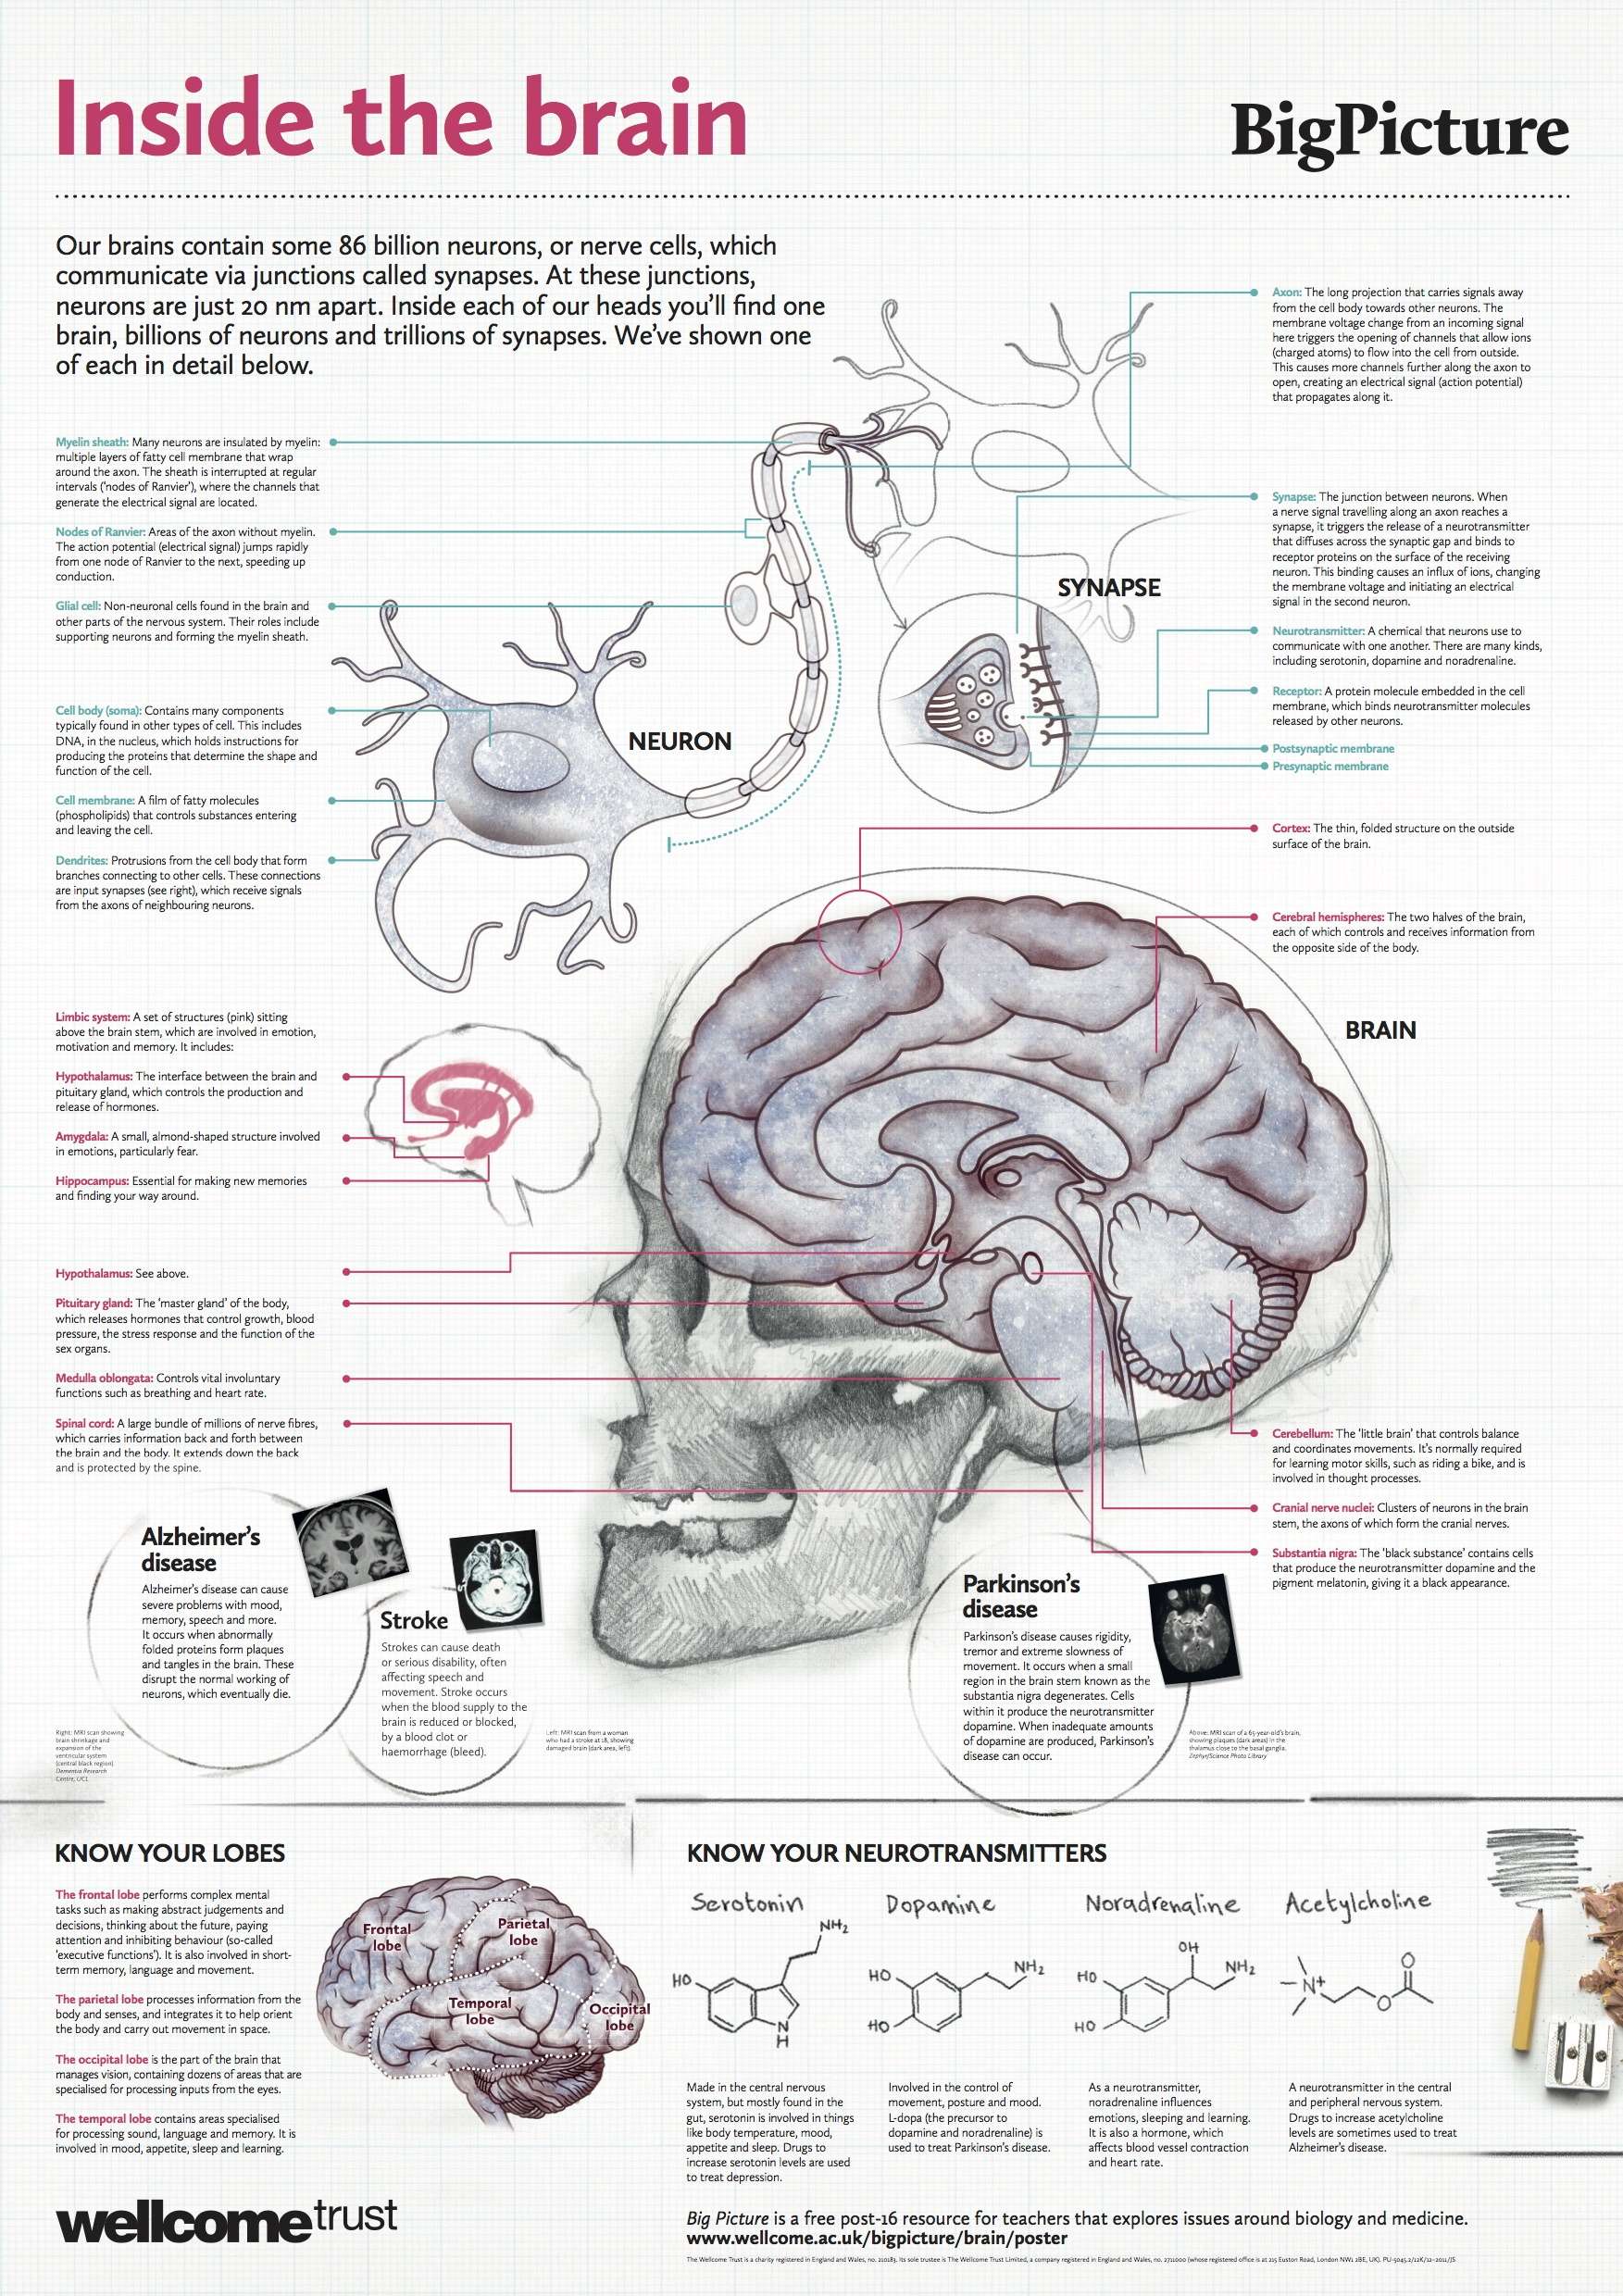 Free Anatomy Posters Download - Anatomical Poster - Free Printable Anatomy Pictures